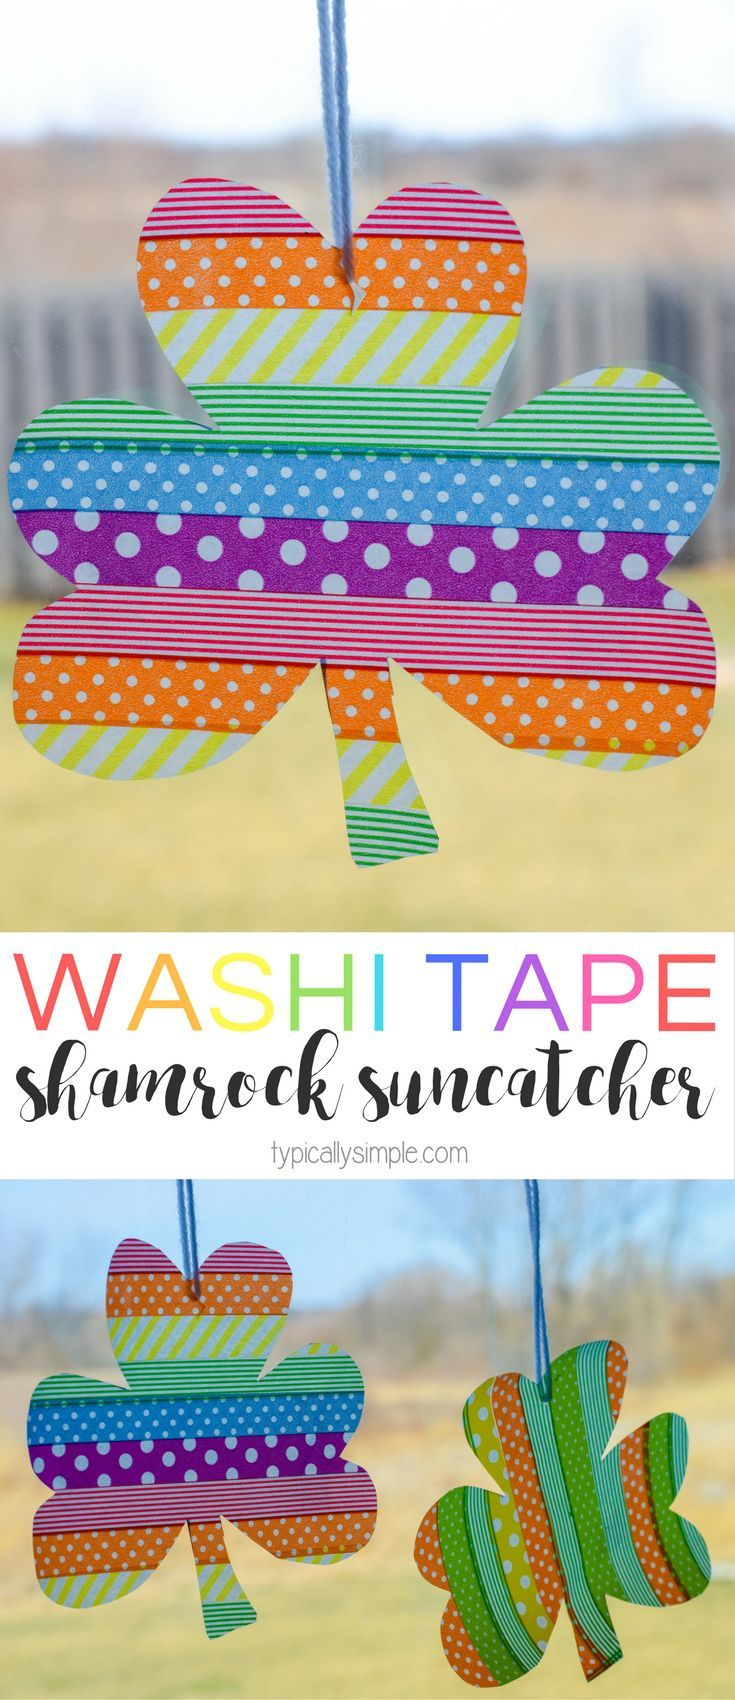 These washi tape shamrock suncatchers are a super easy craft to make with the kids for St. Patrick's Day. And they are perfect for adding a rainbow of colors to your windows!